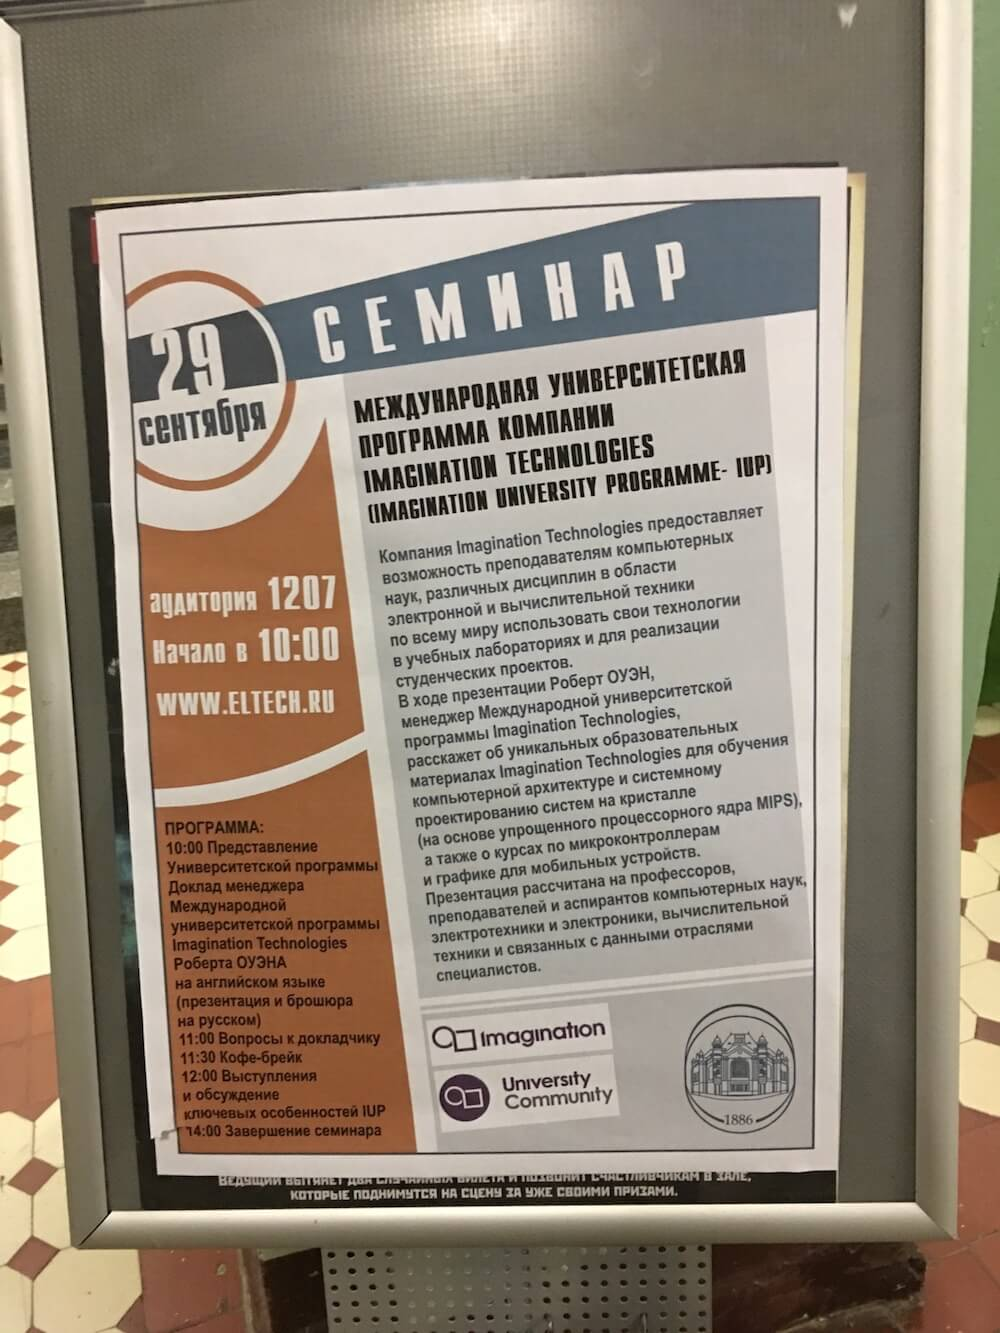 University Programme Seminar by Robert Owen in Russia September 2017